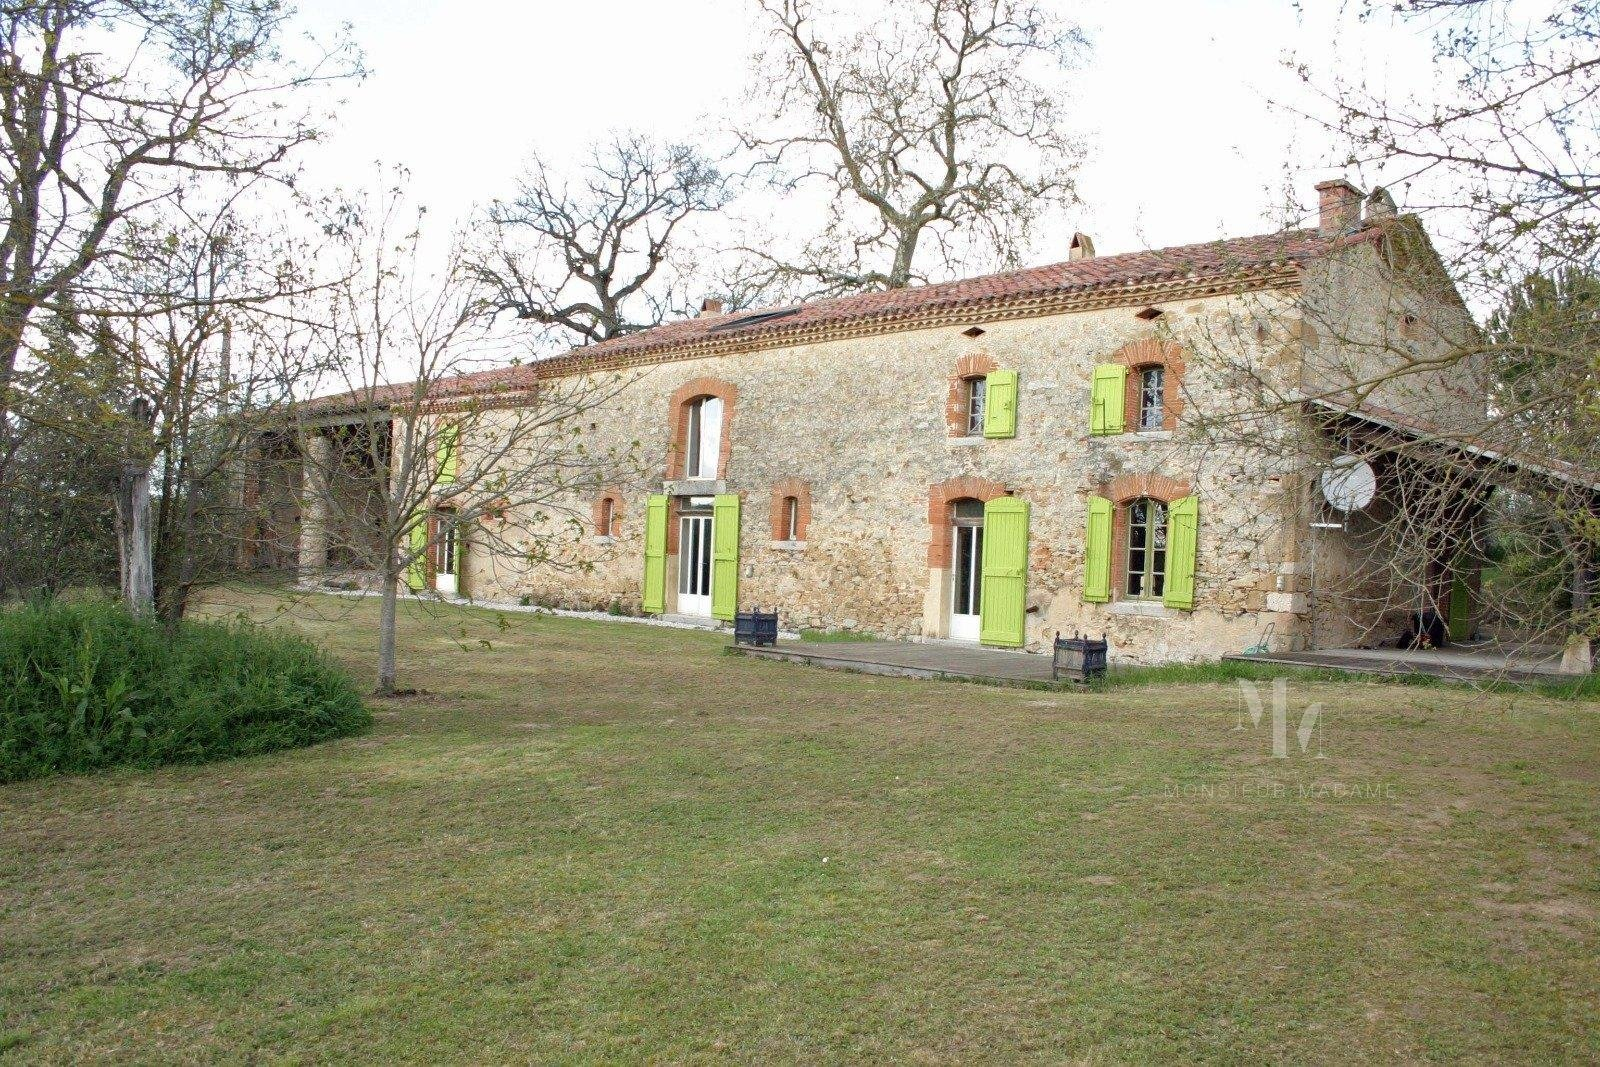 Villefranche, 20 min, lauragaise farm renovated on 7300 m2.